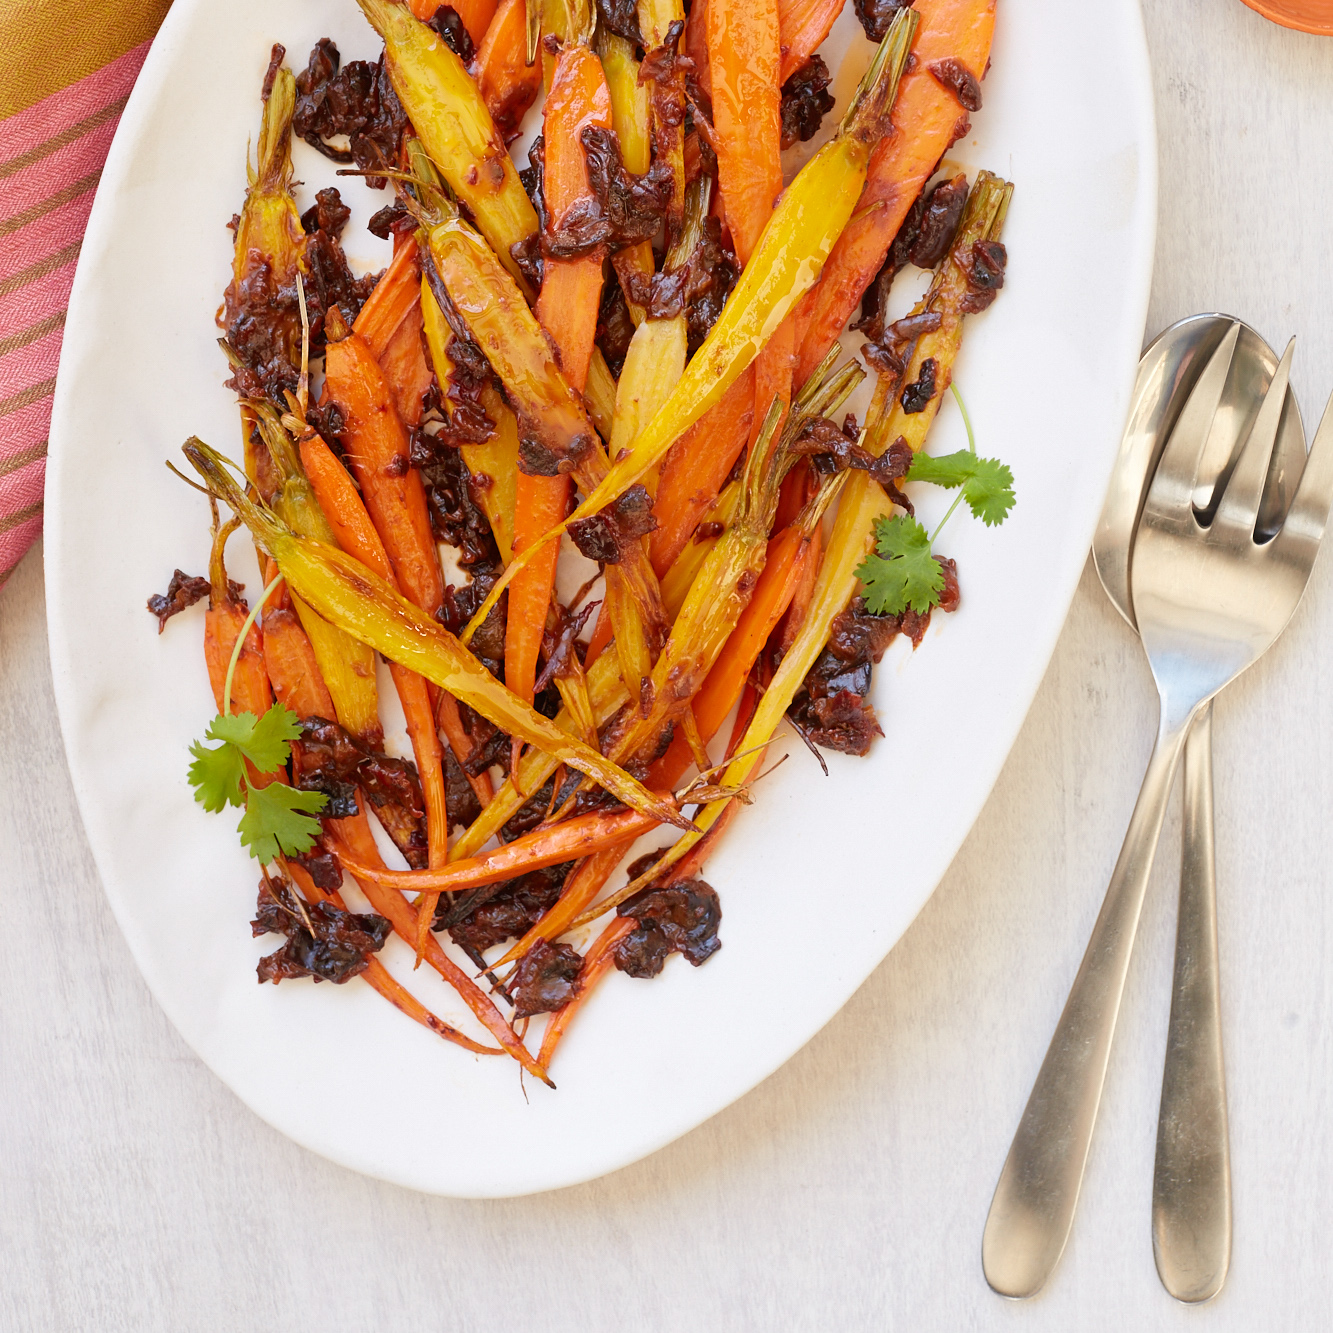 <p>Roasting chipotle and prunes with carrots makes a satisfying vegetable side dish.</p>